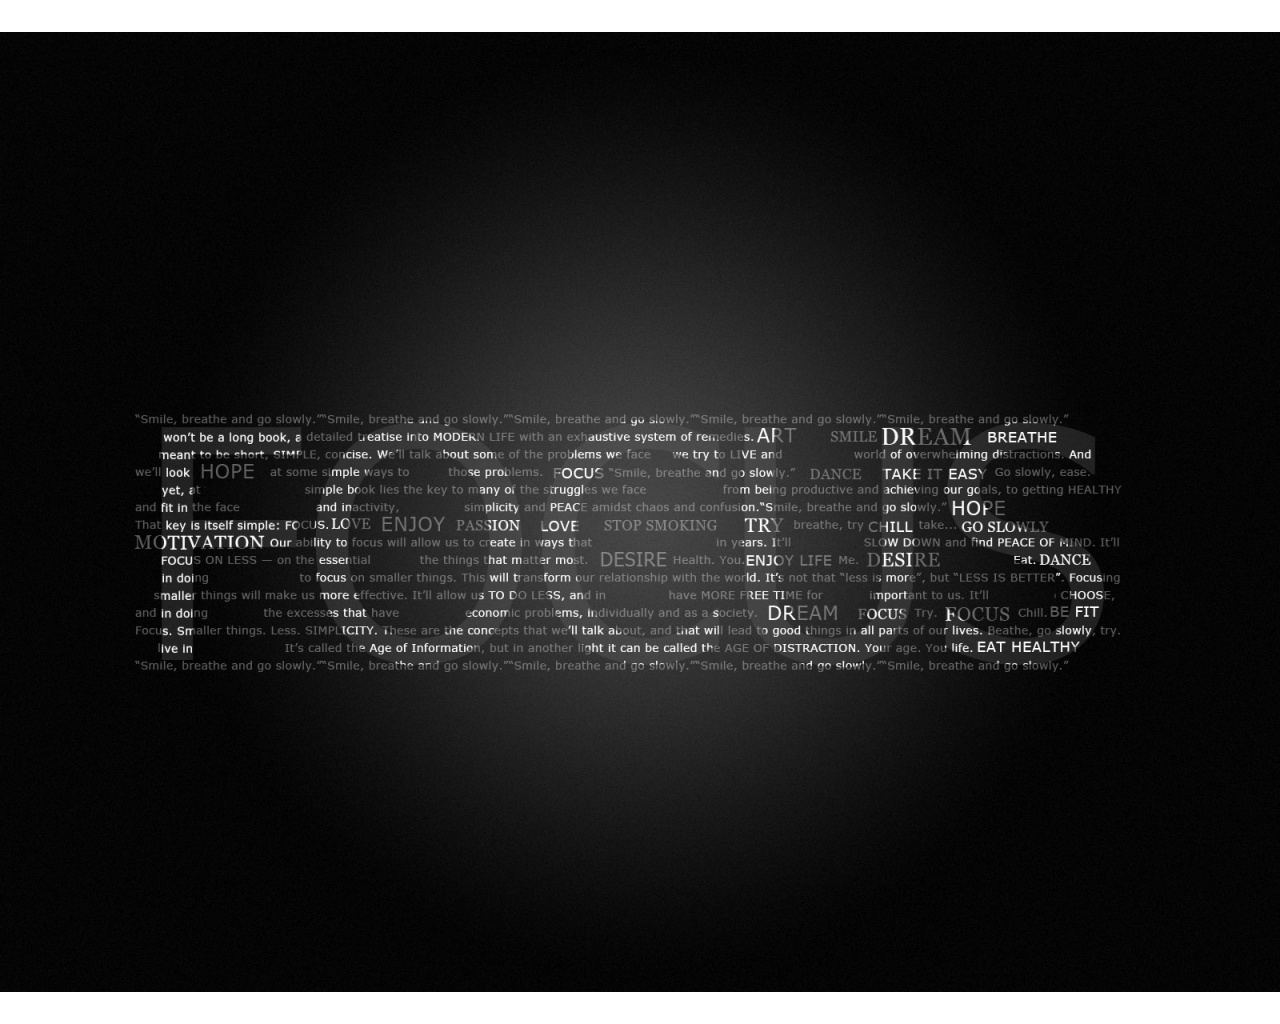 Focus Wallpaper HD